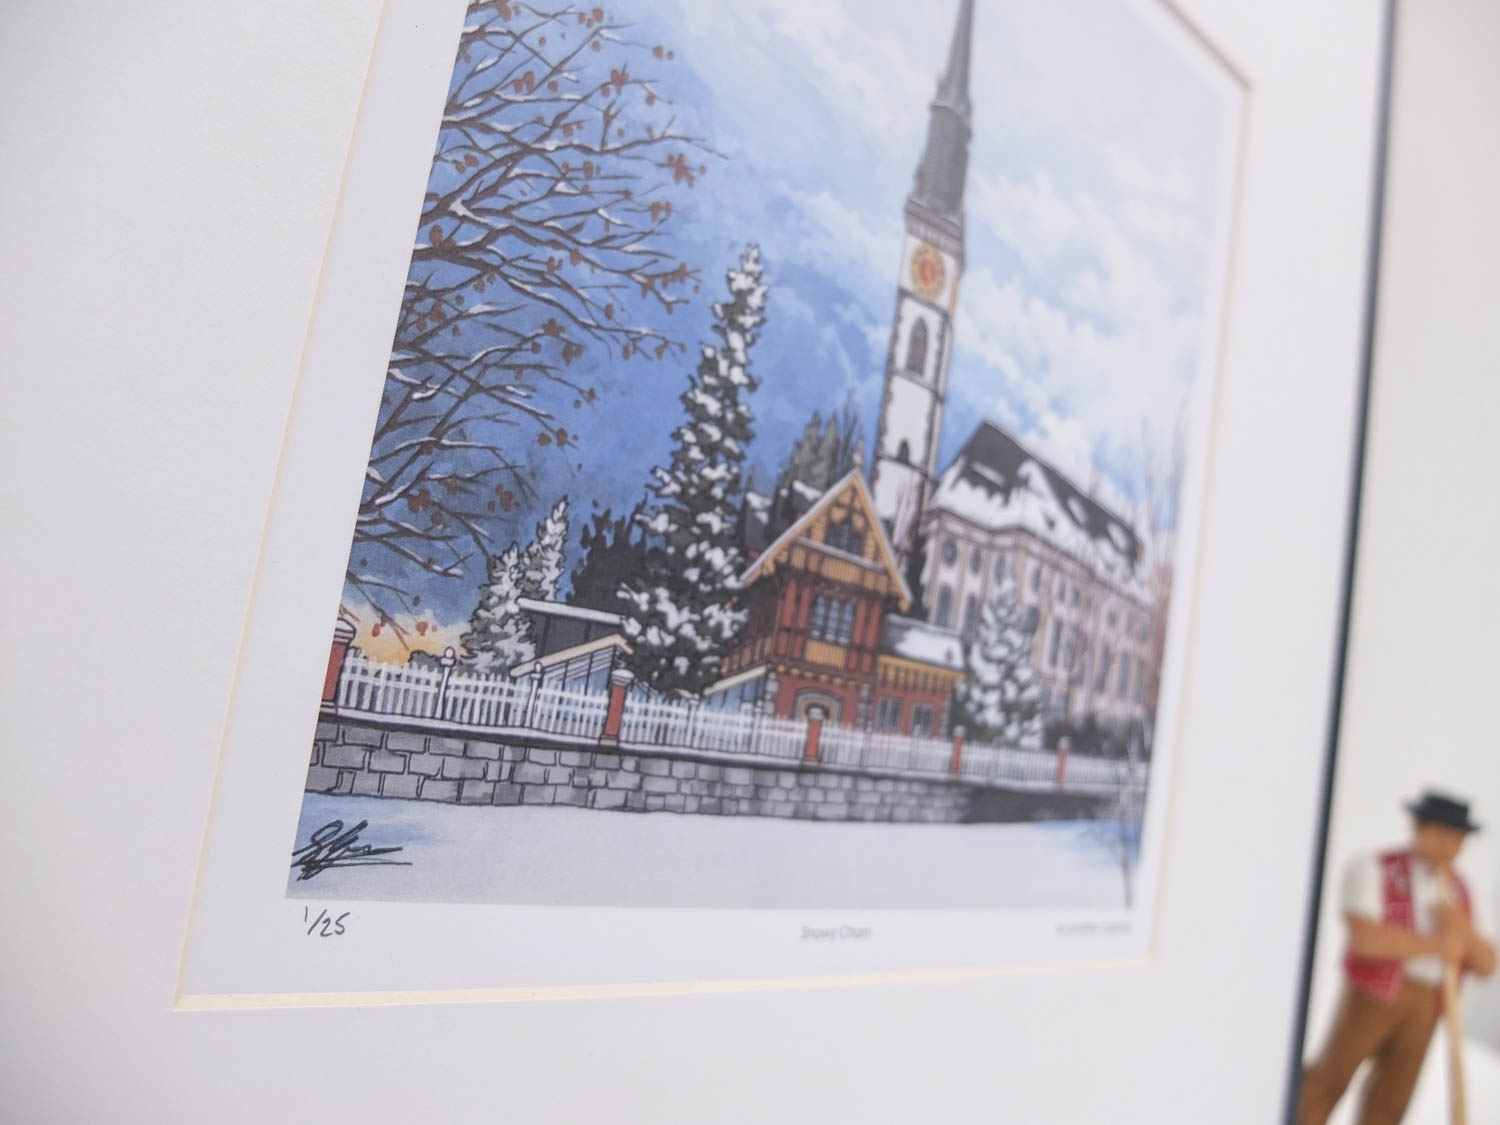 Snowy Cham Limited Edition Print